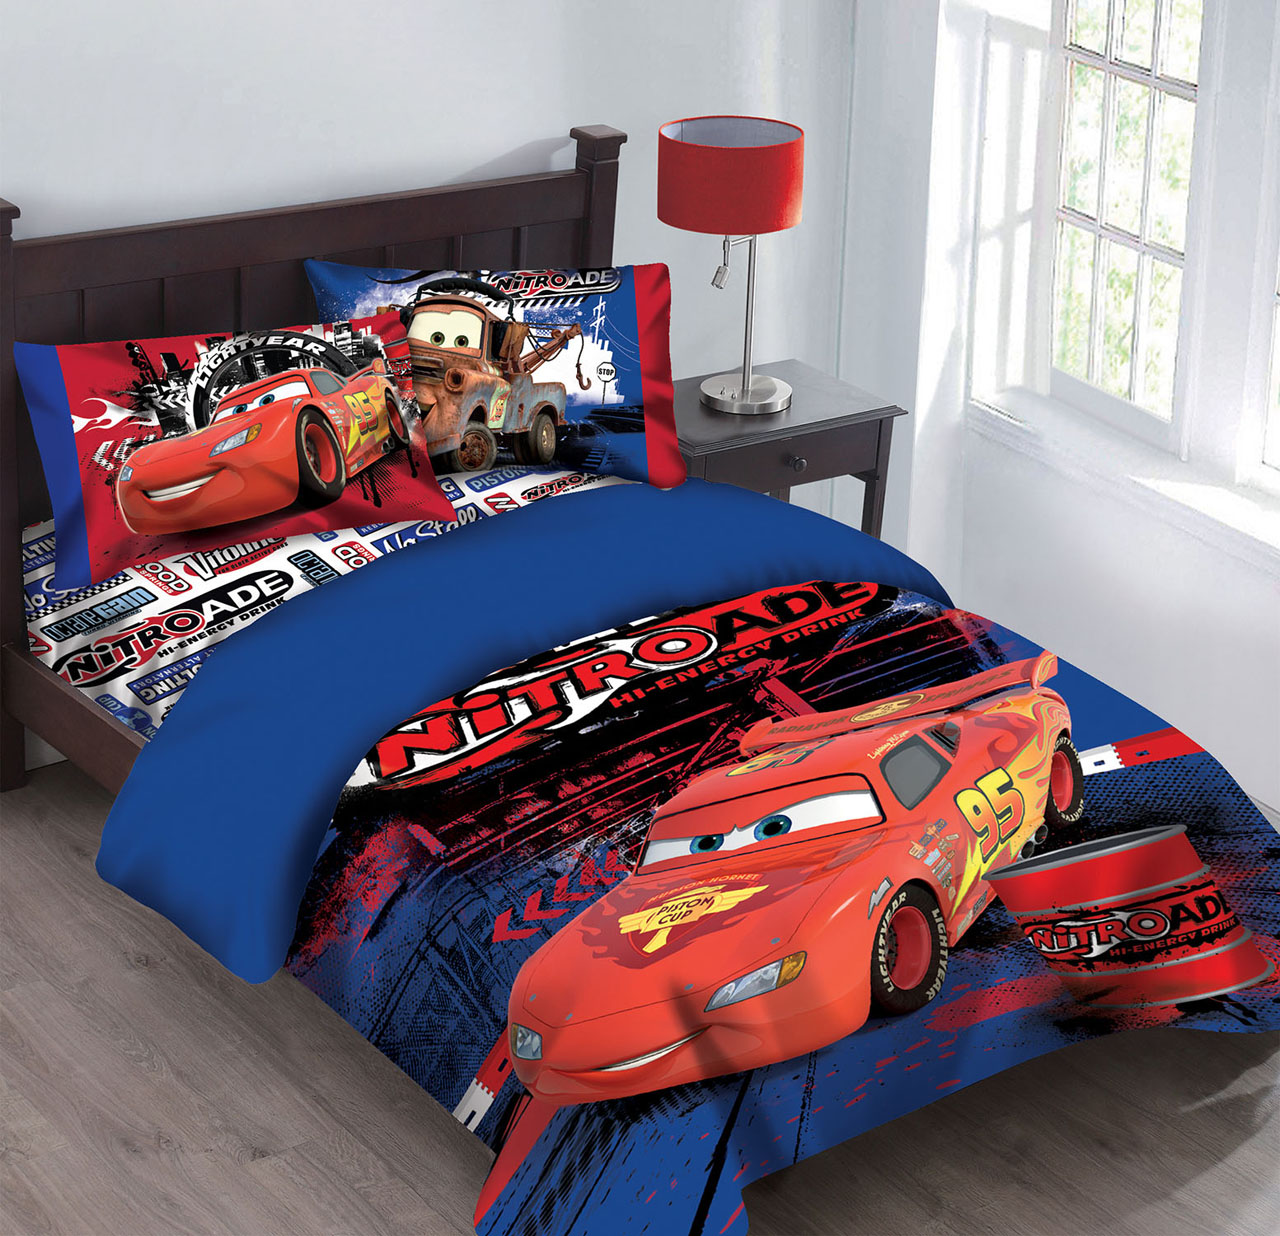 Disney Cars Nitroade Bedding Comforter Set by